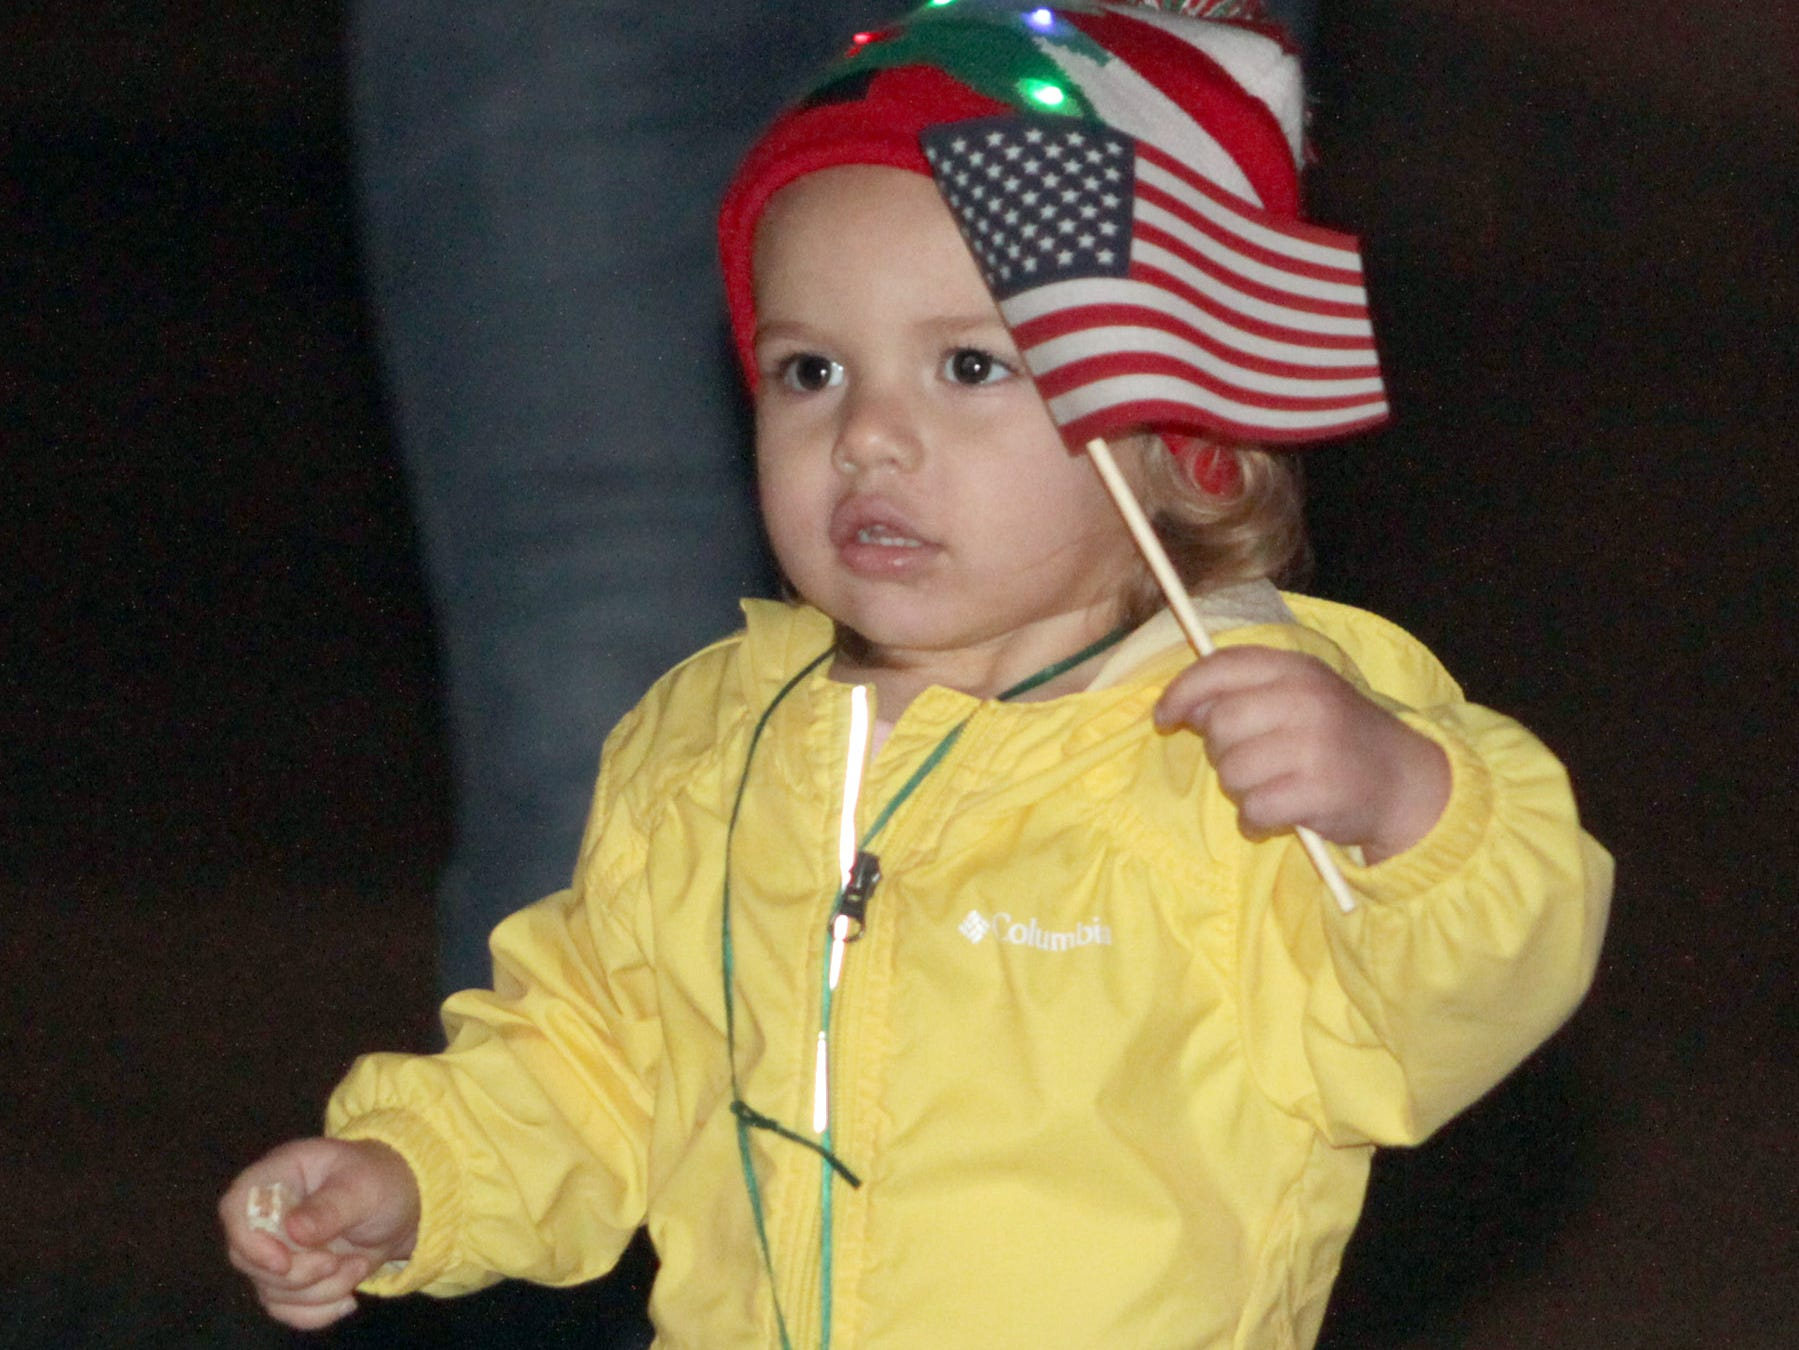 A young child waves her flag at the Ashland City Xams parade on Saturday, December 1, 2018.